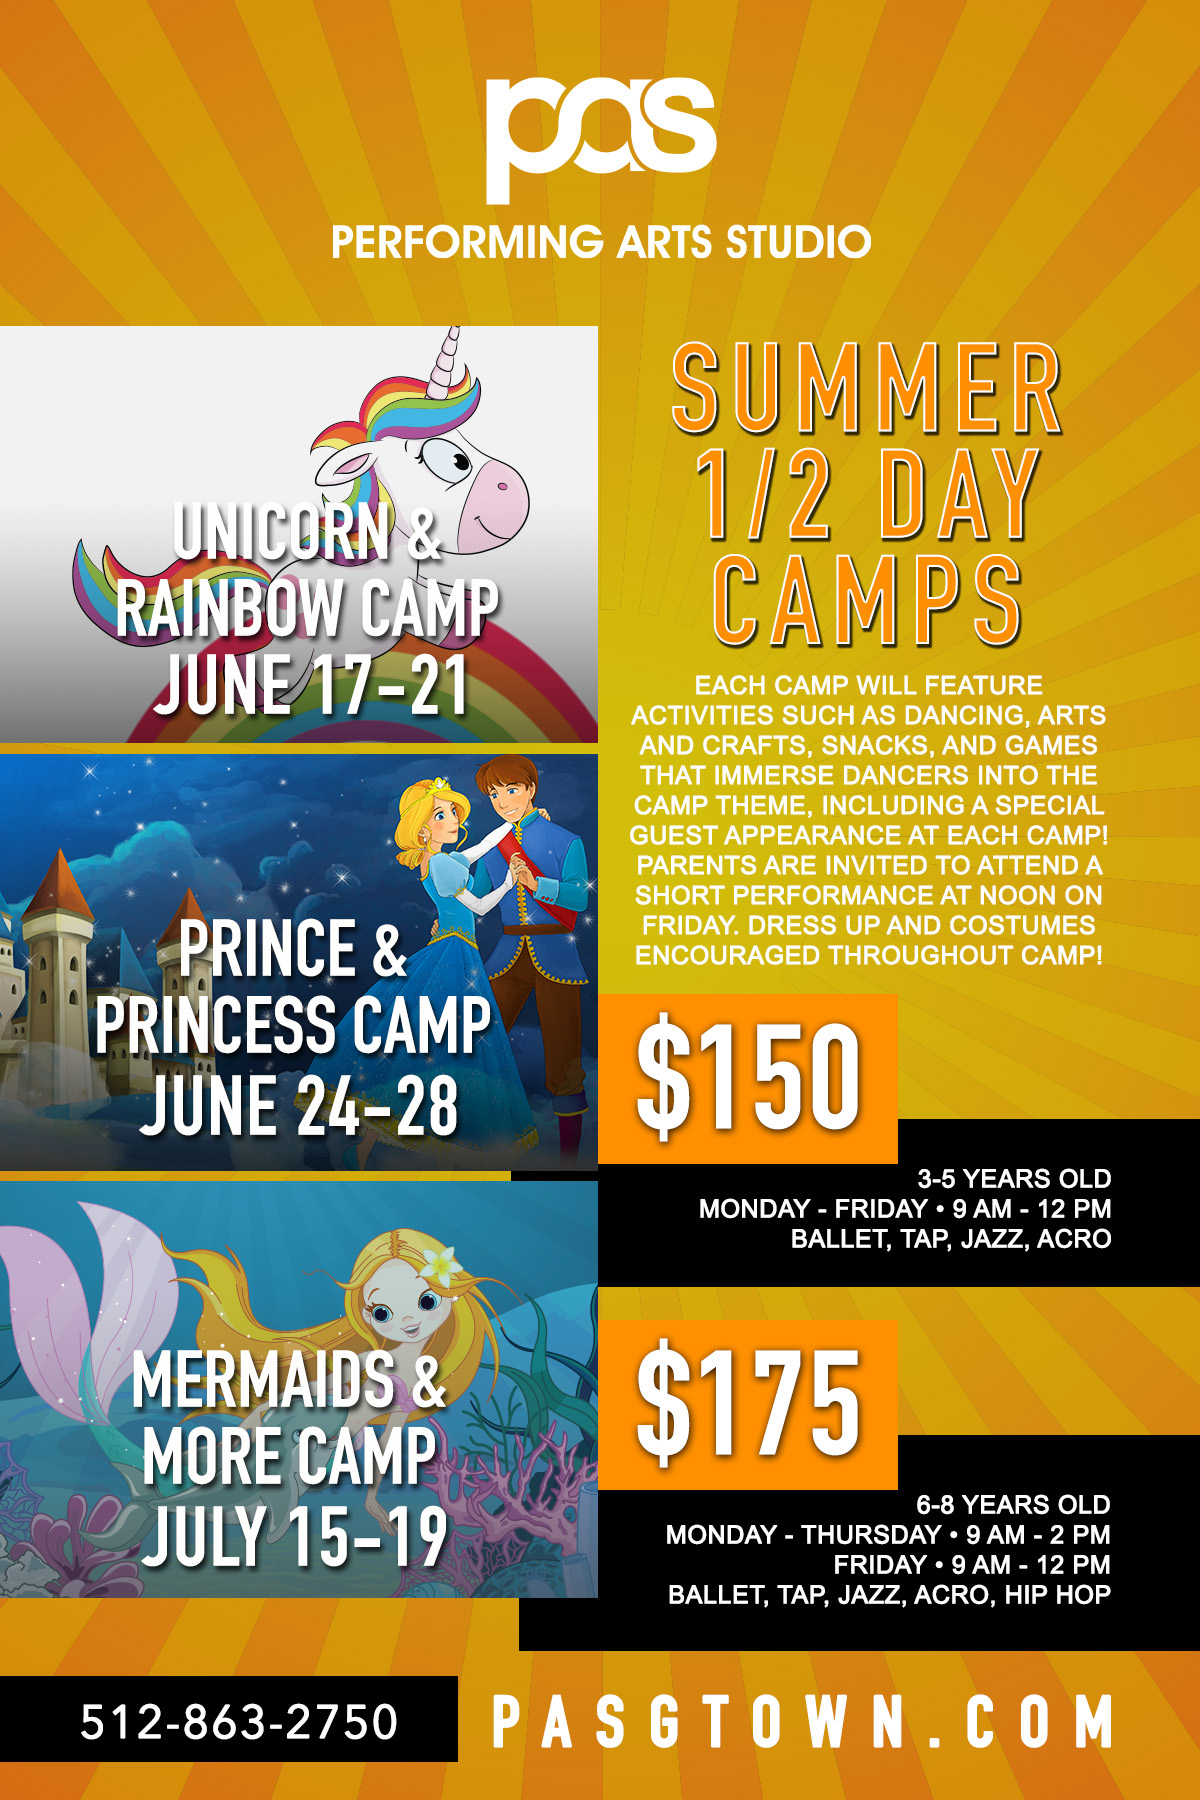 4x6_2019_SummerCamps1.5_Promo.jpg